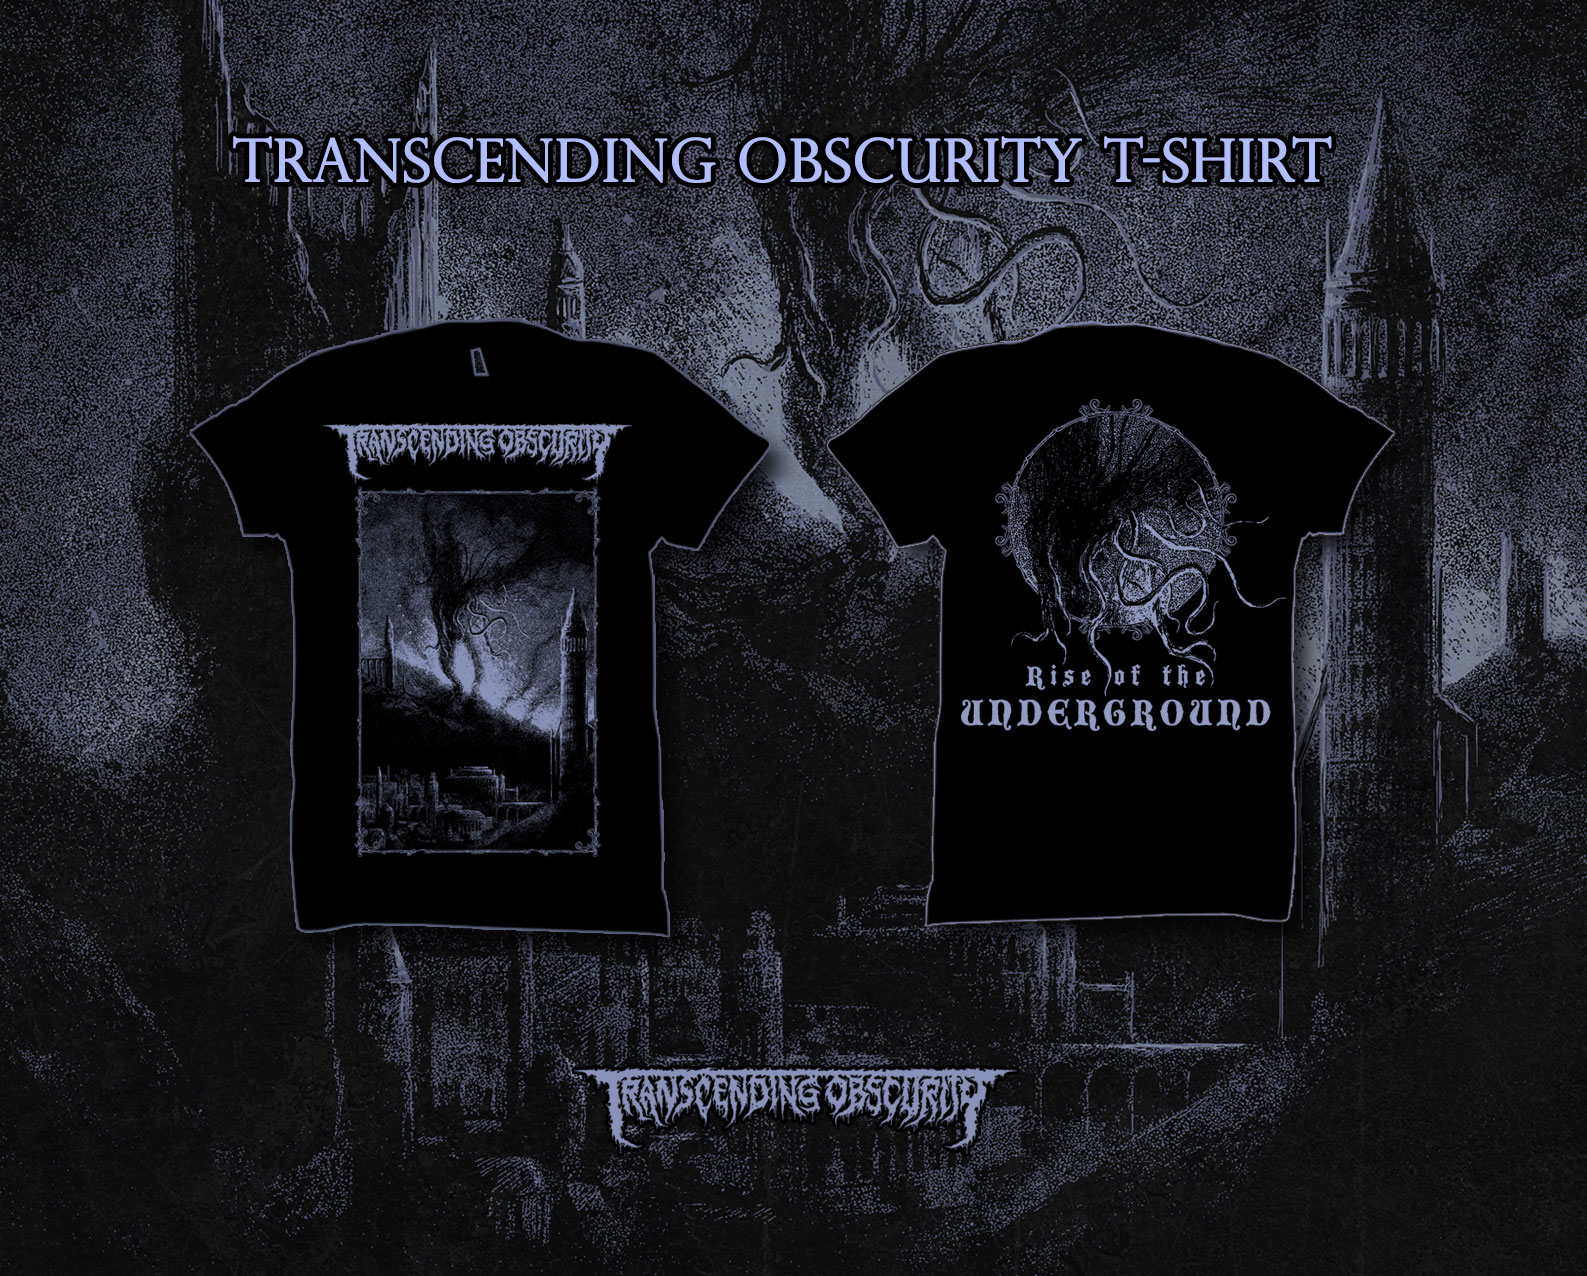 2018 Transcending Obscurity T-shirt (front and back print)